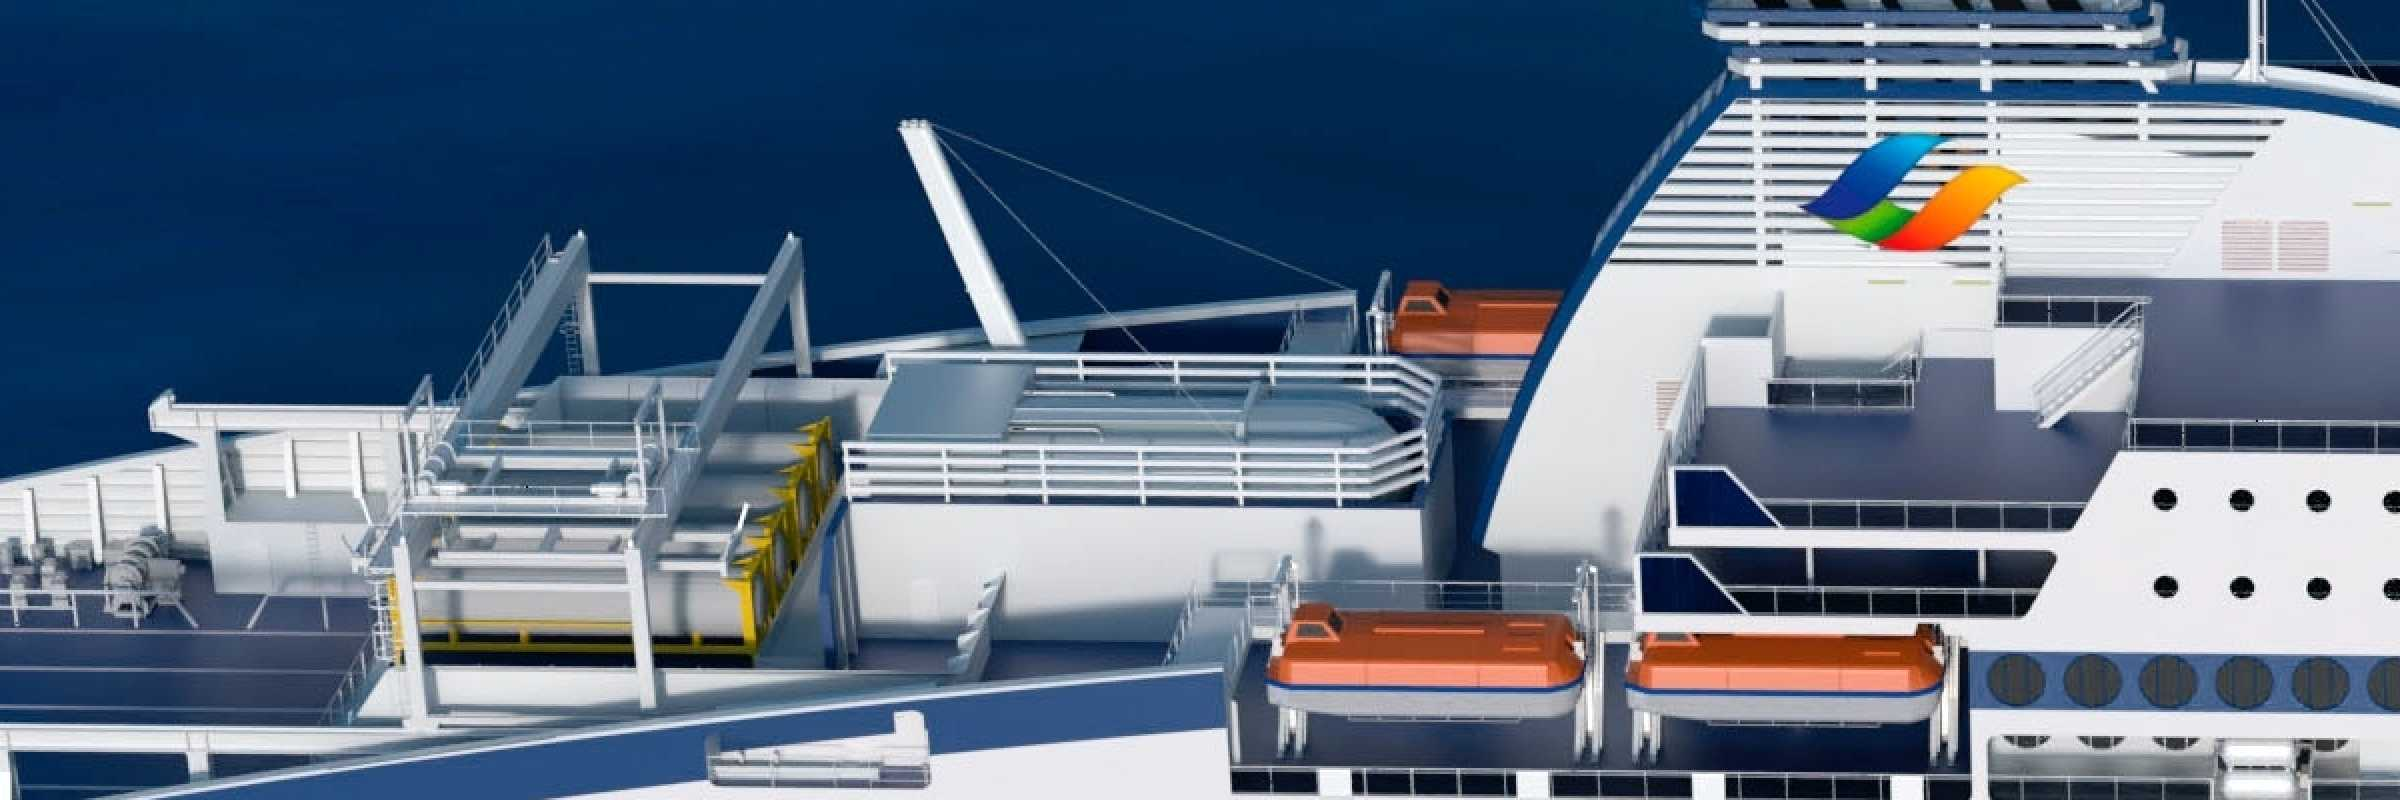 Brittany Ferries cancels contract with FSG